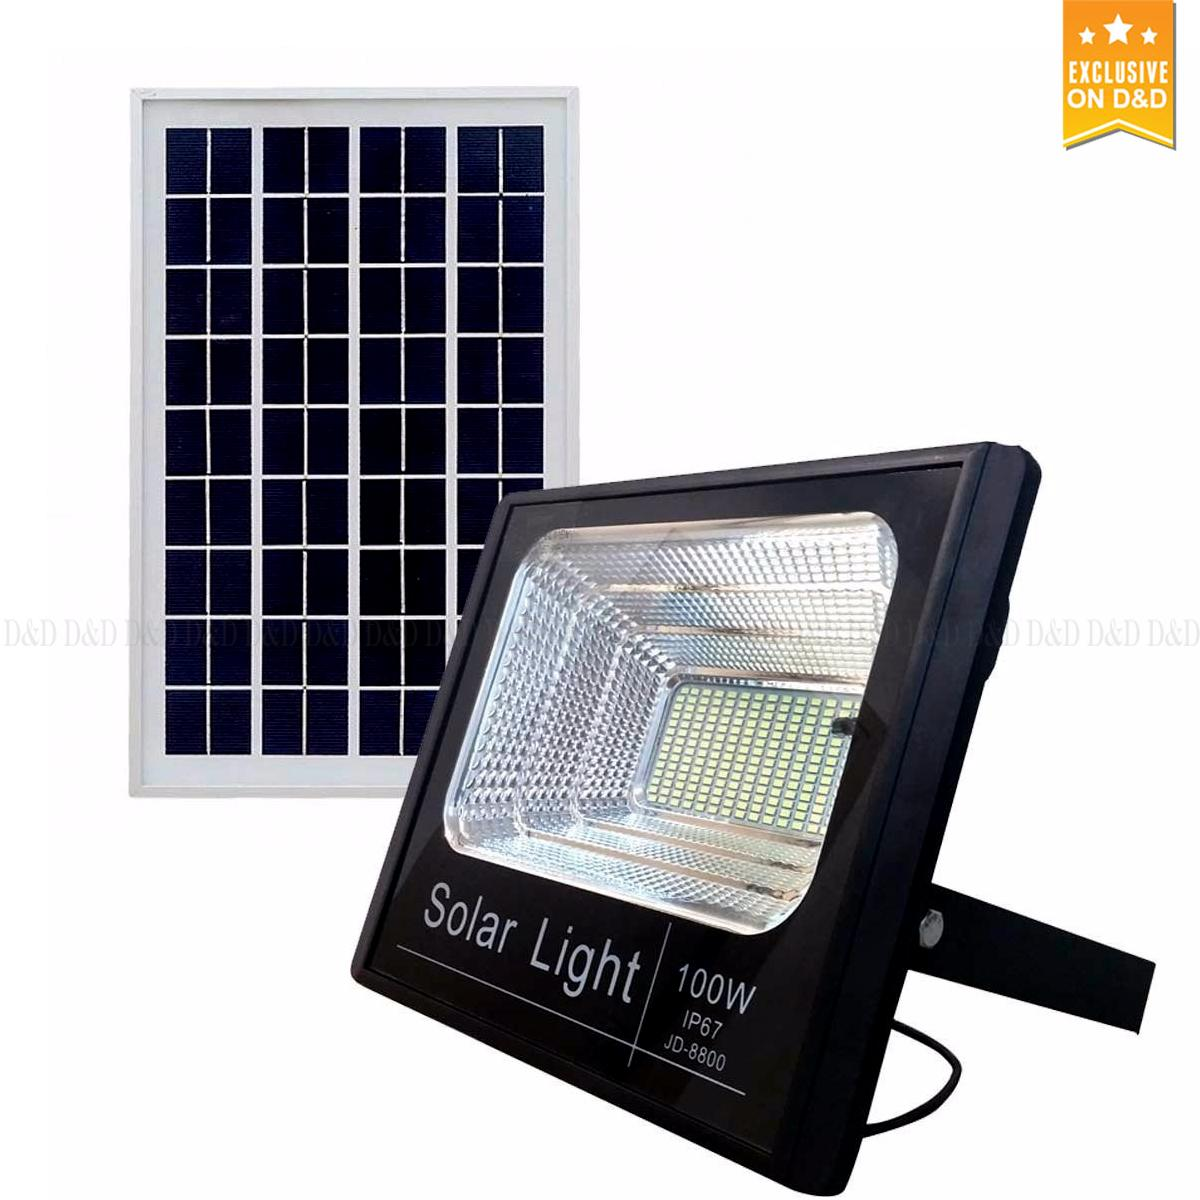 D Dccy Led Spotlight 100 Watts C Solar Panel And Full Control